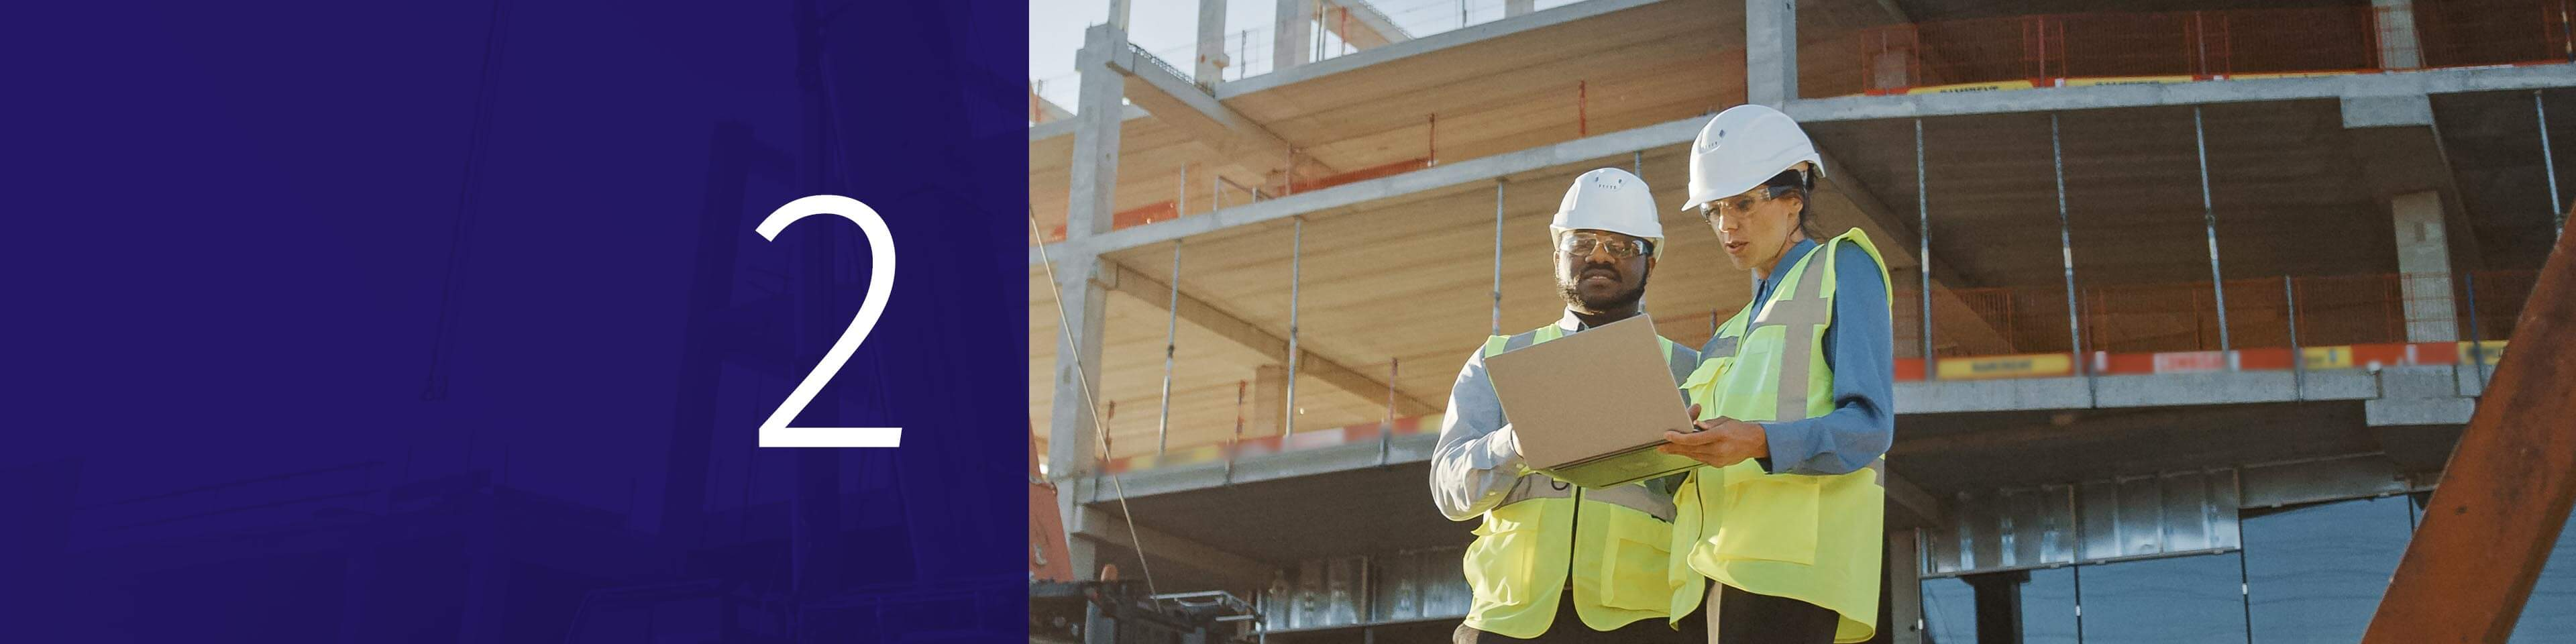 Construction Companies Face Unique Sales and Use Tax Challenges: Projects Complexity Issues to Consider